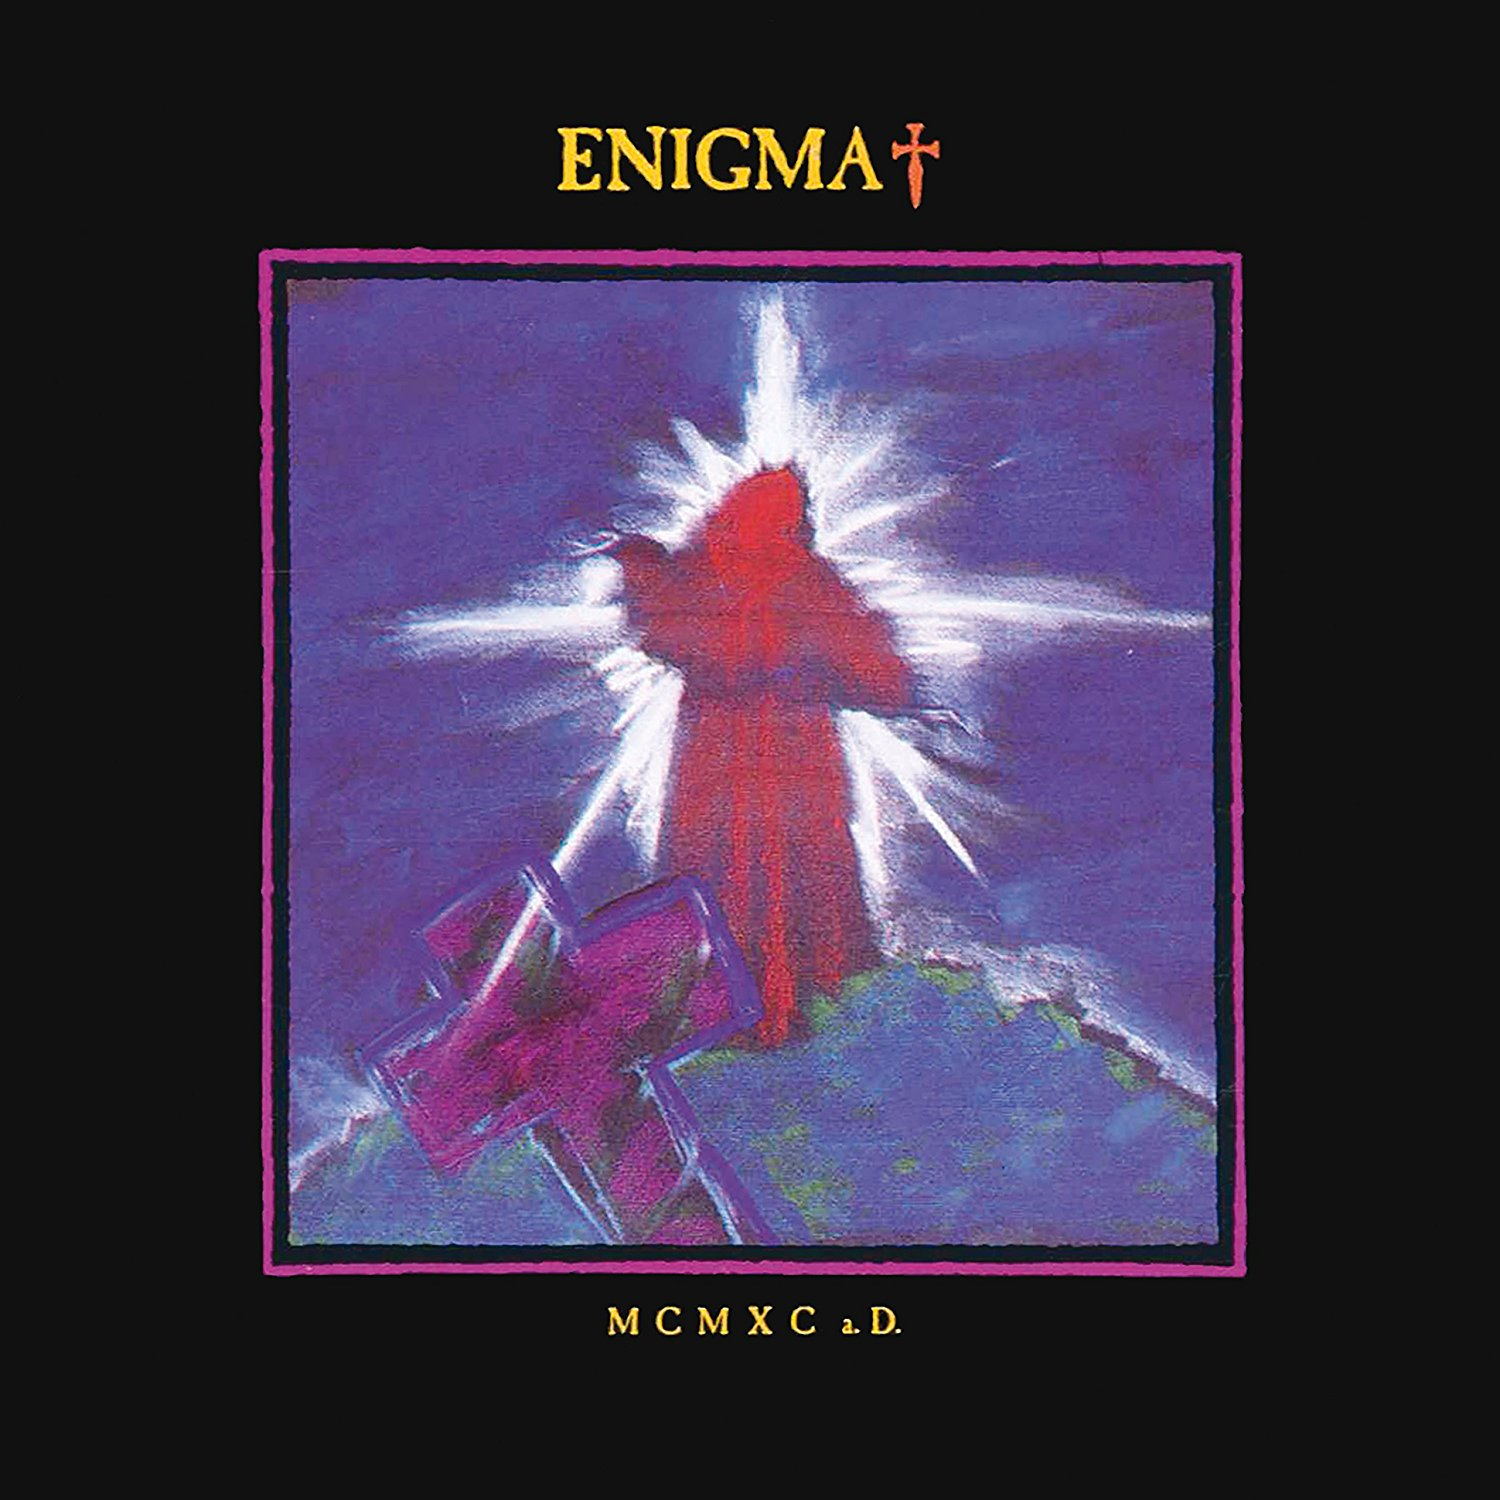 CD Shop - ENIGMA MCMXC A.D.